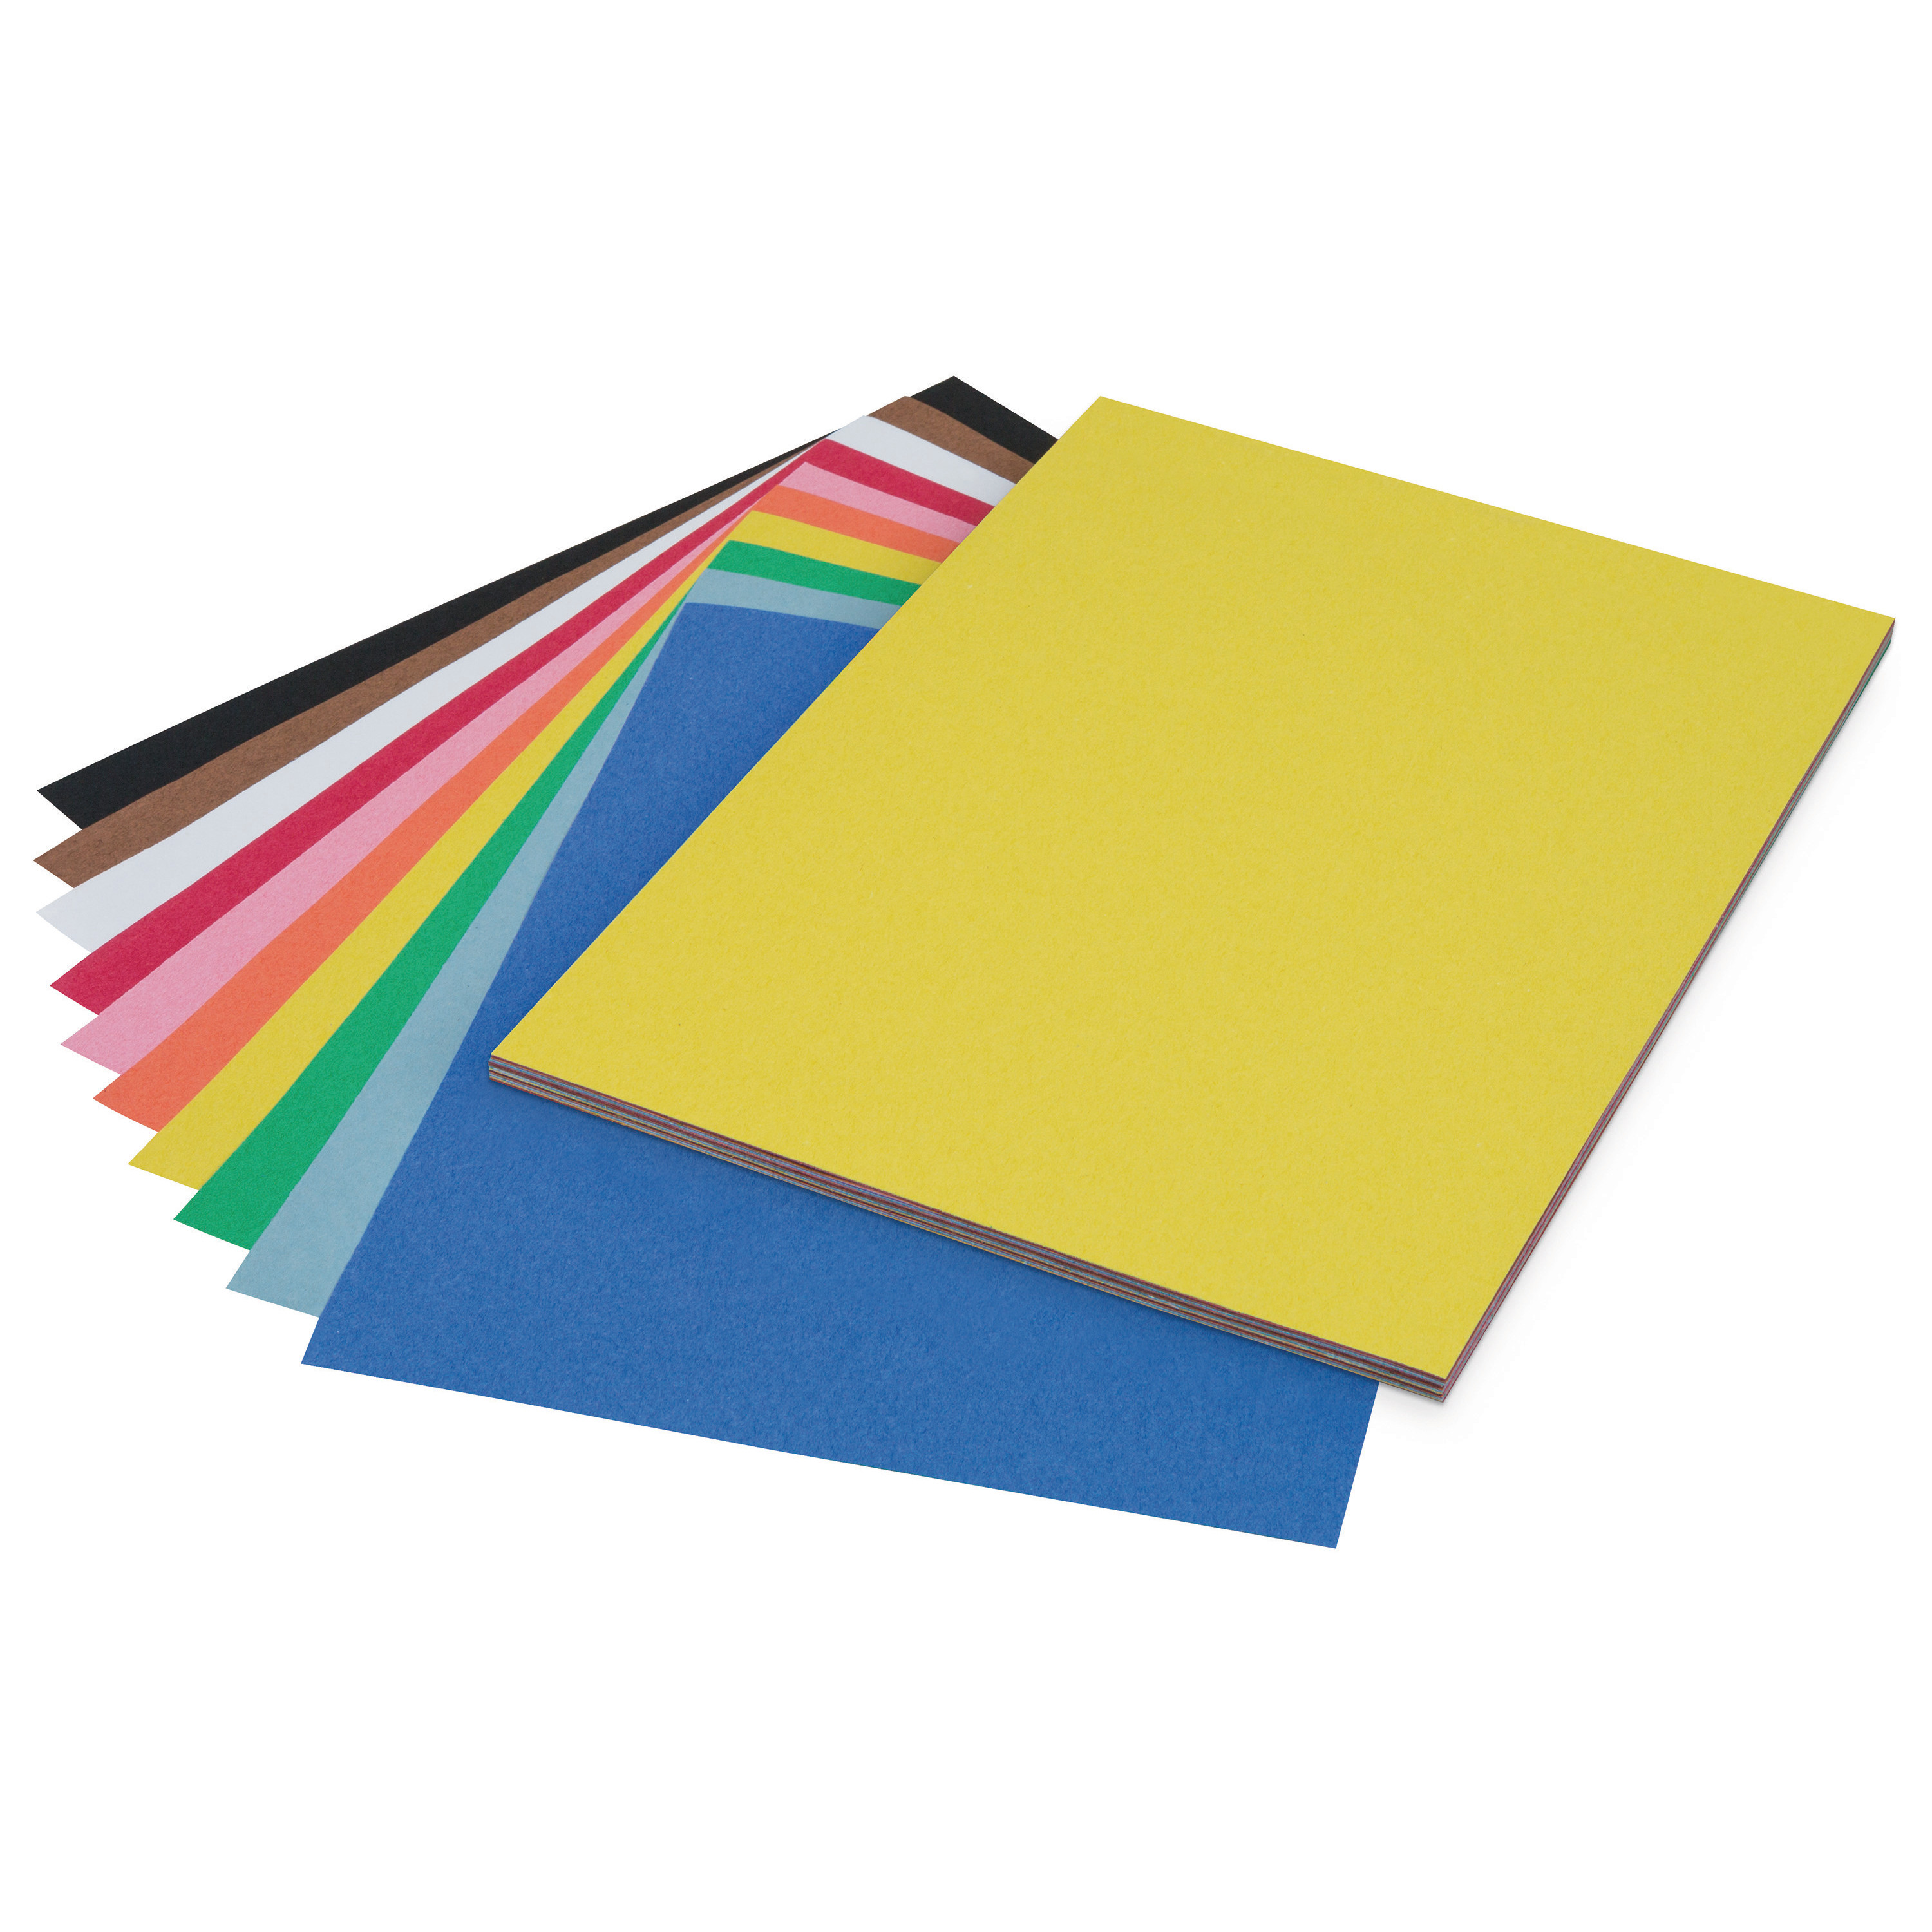 "Pacon Riverside Construction Paper, 18"" x 24"", Assorted Colors"